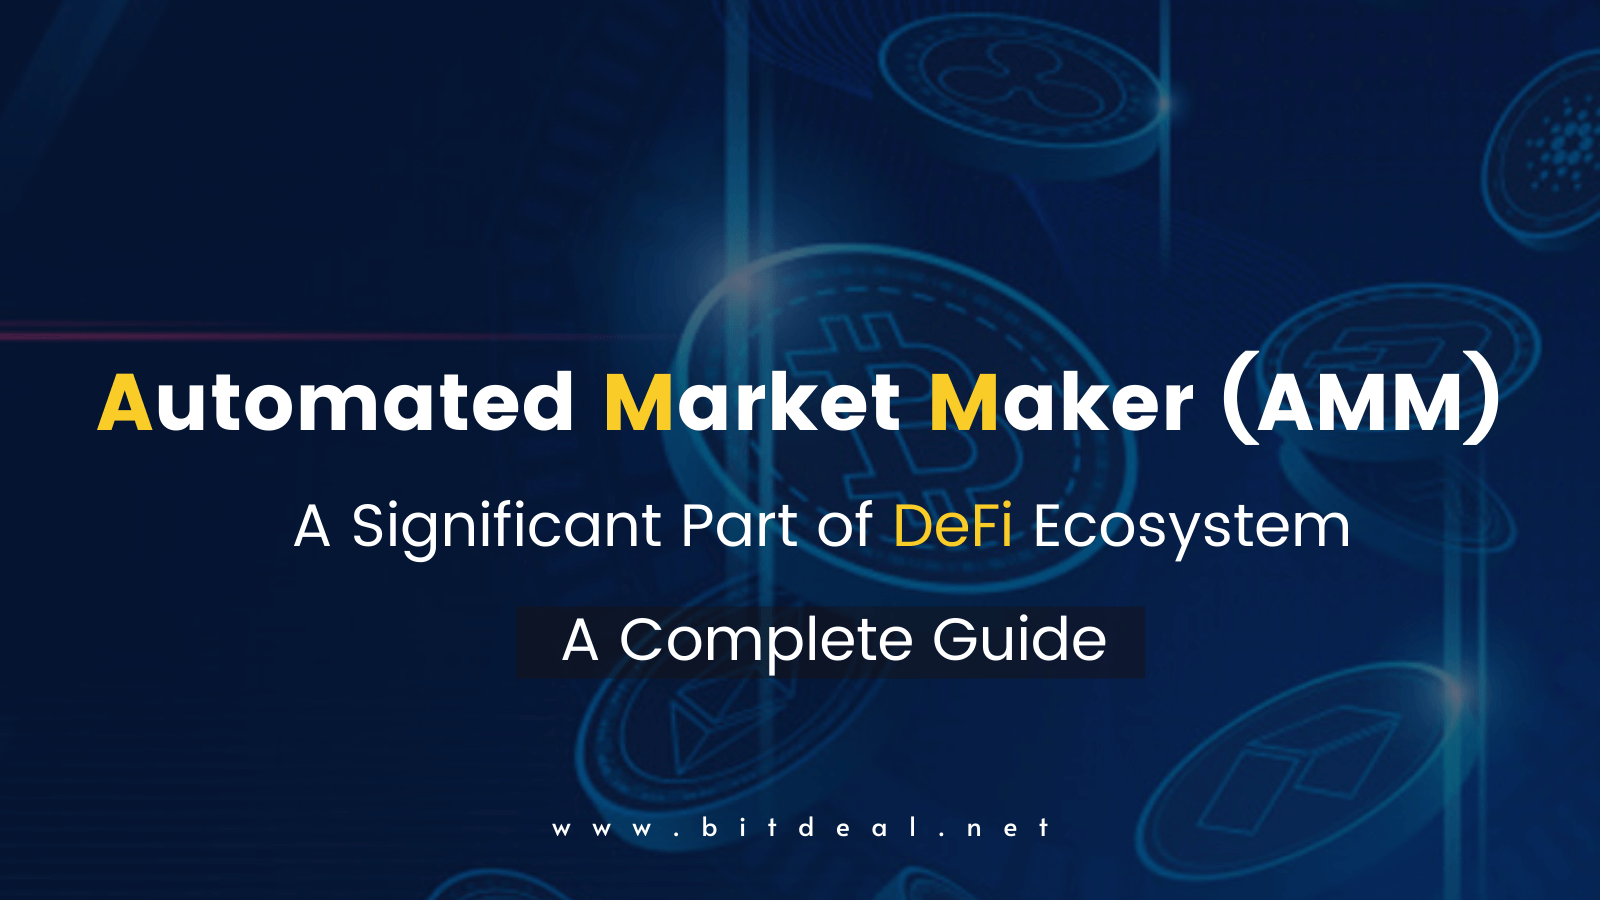 A Brief Introduction to Automated Market Makers (AMM)